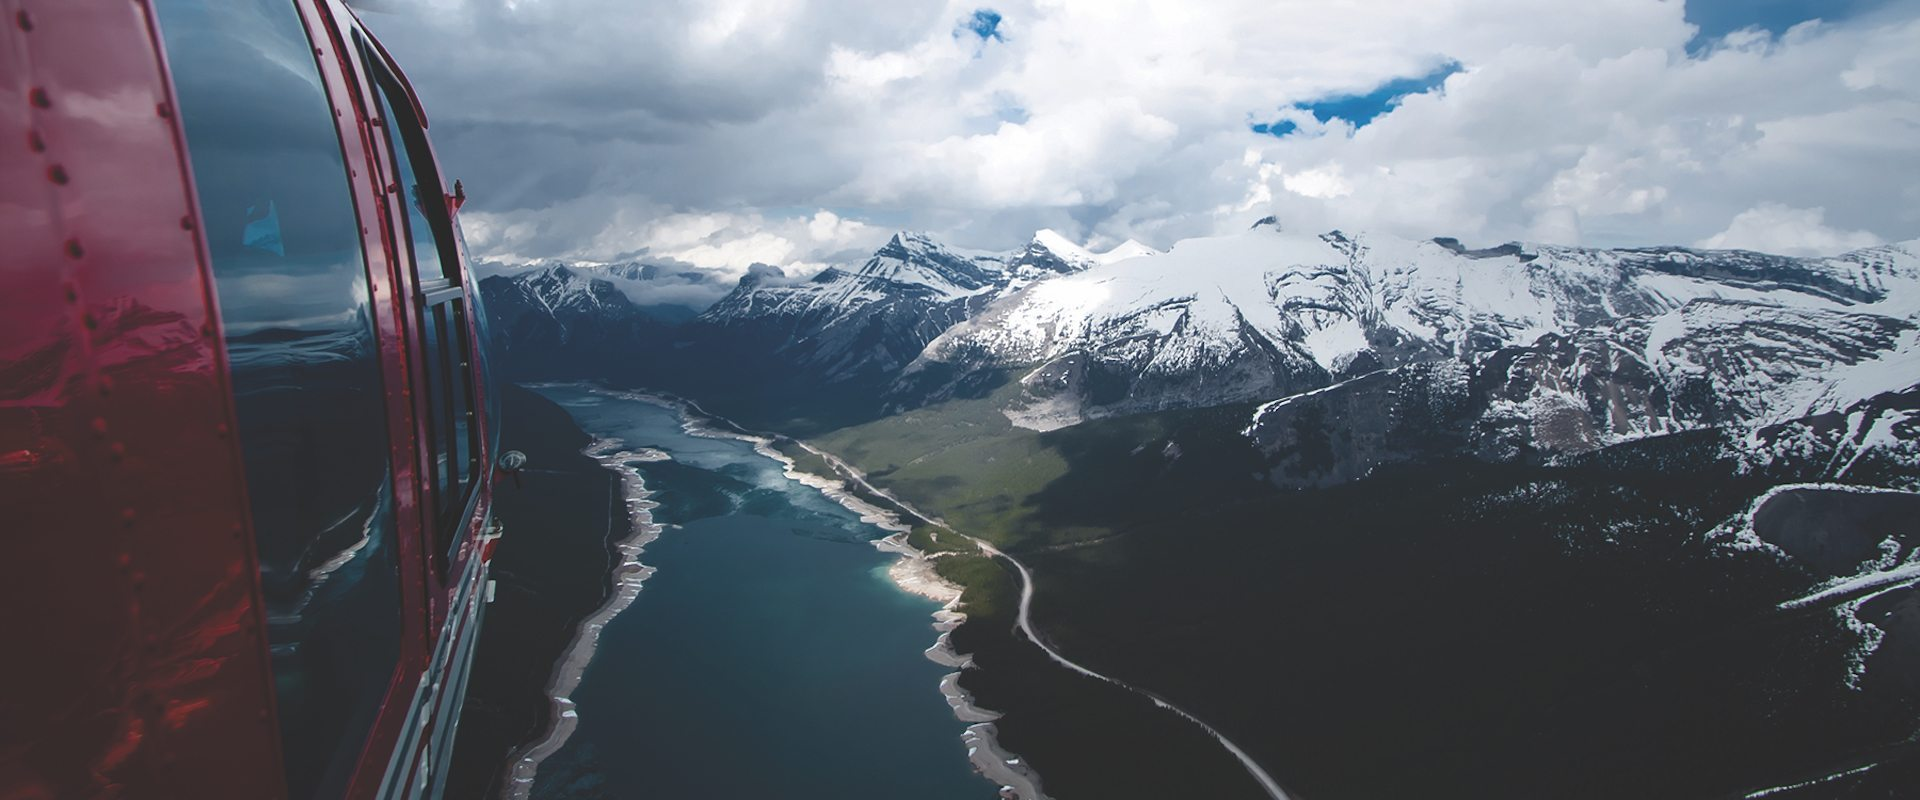 Helicopter ride over the Banff National Park